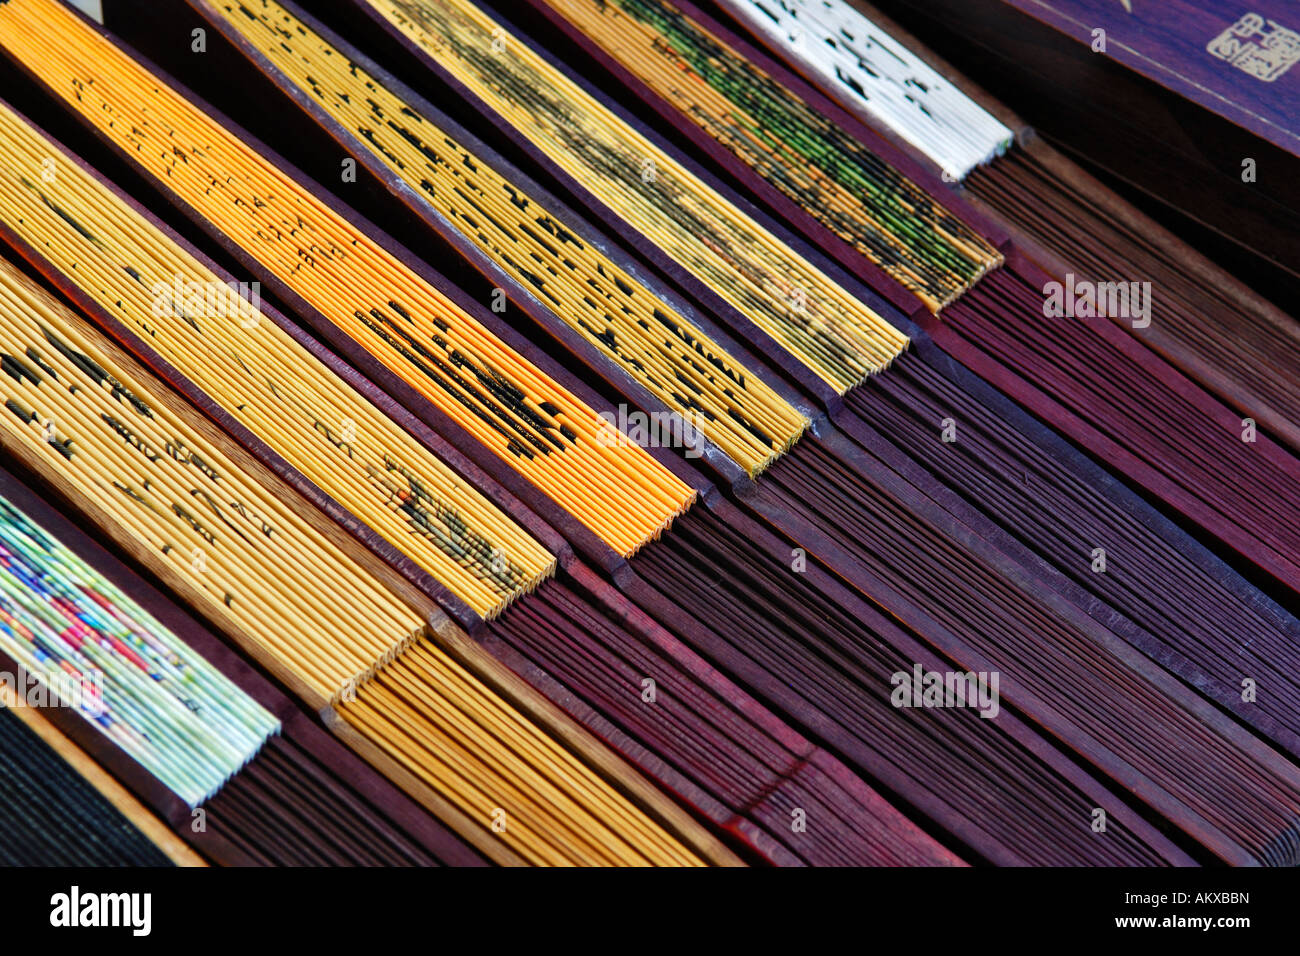 Fans at a stand, Longhua Temple, Shanghia, China - Stock Image